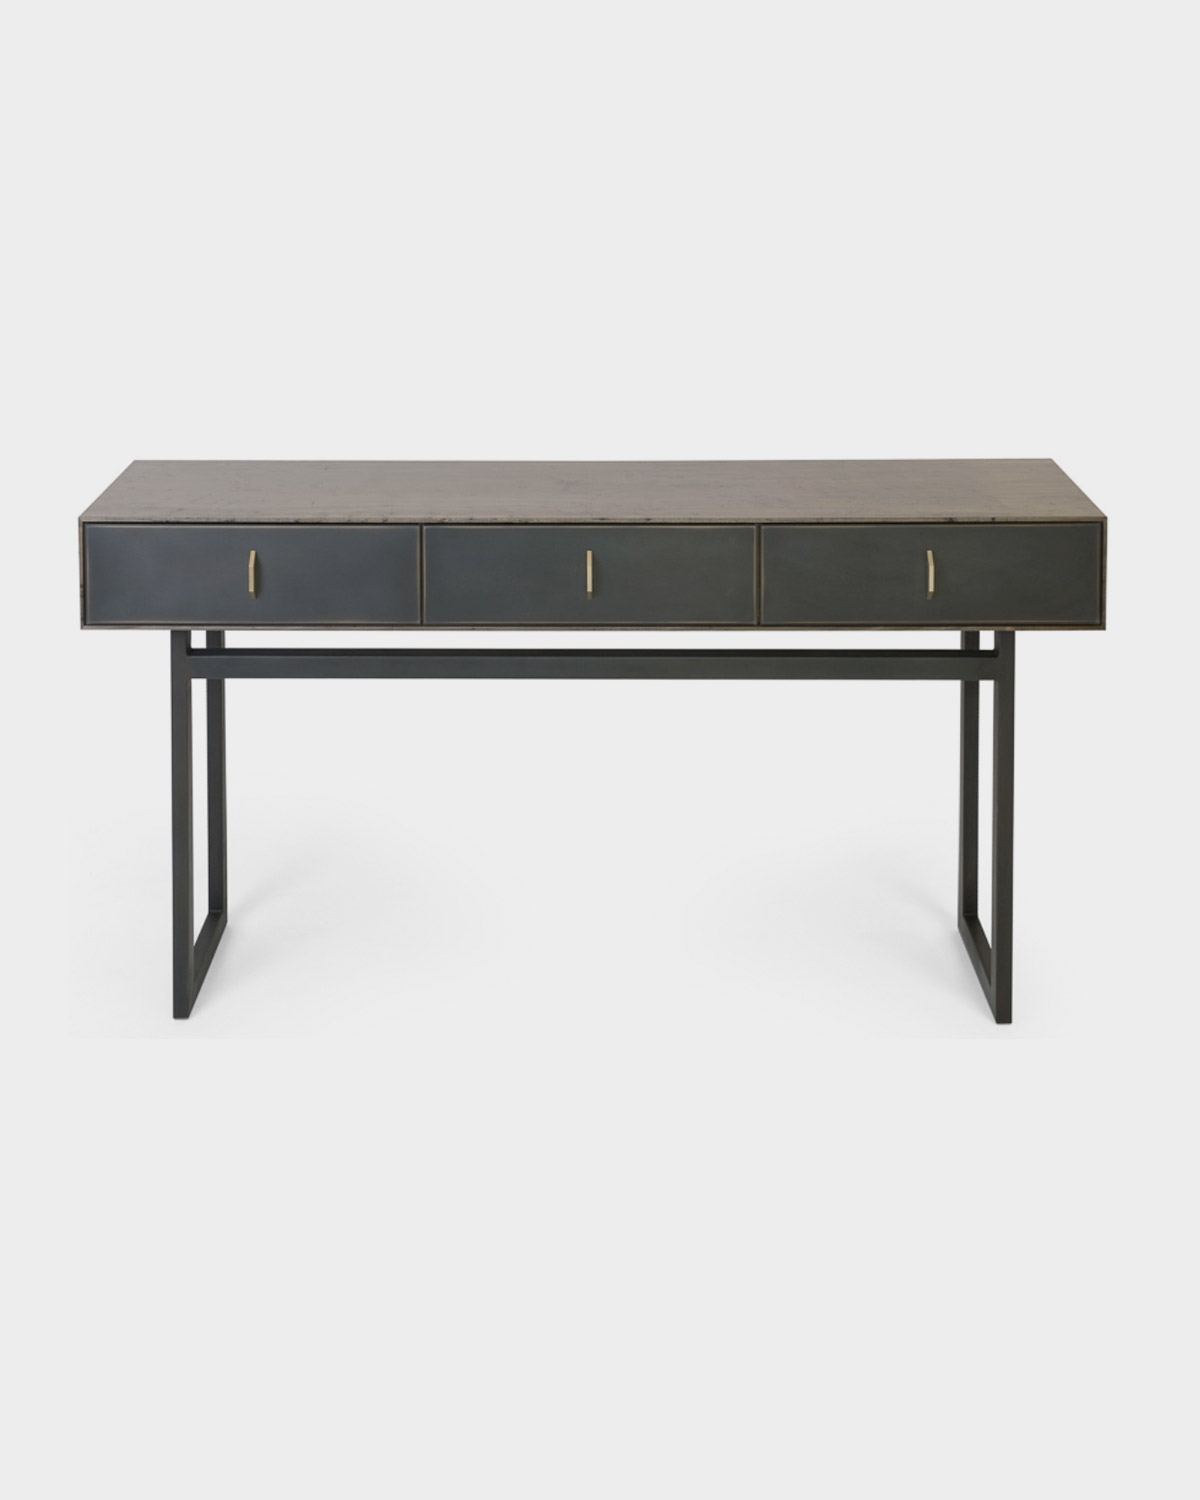 The Gotham Console by Wud